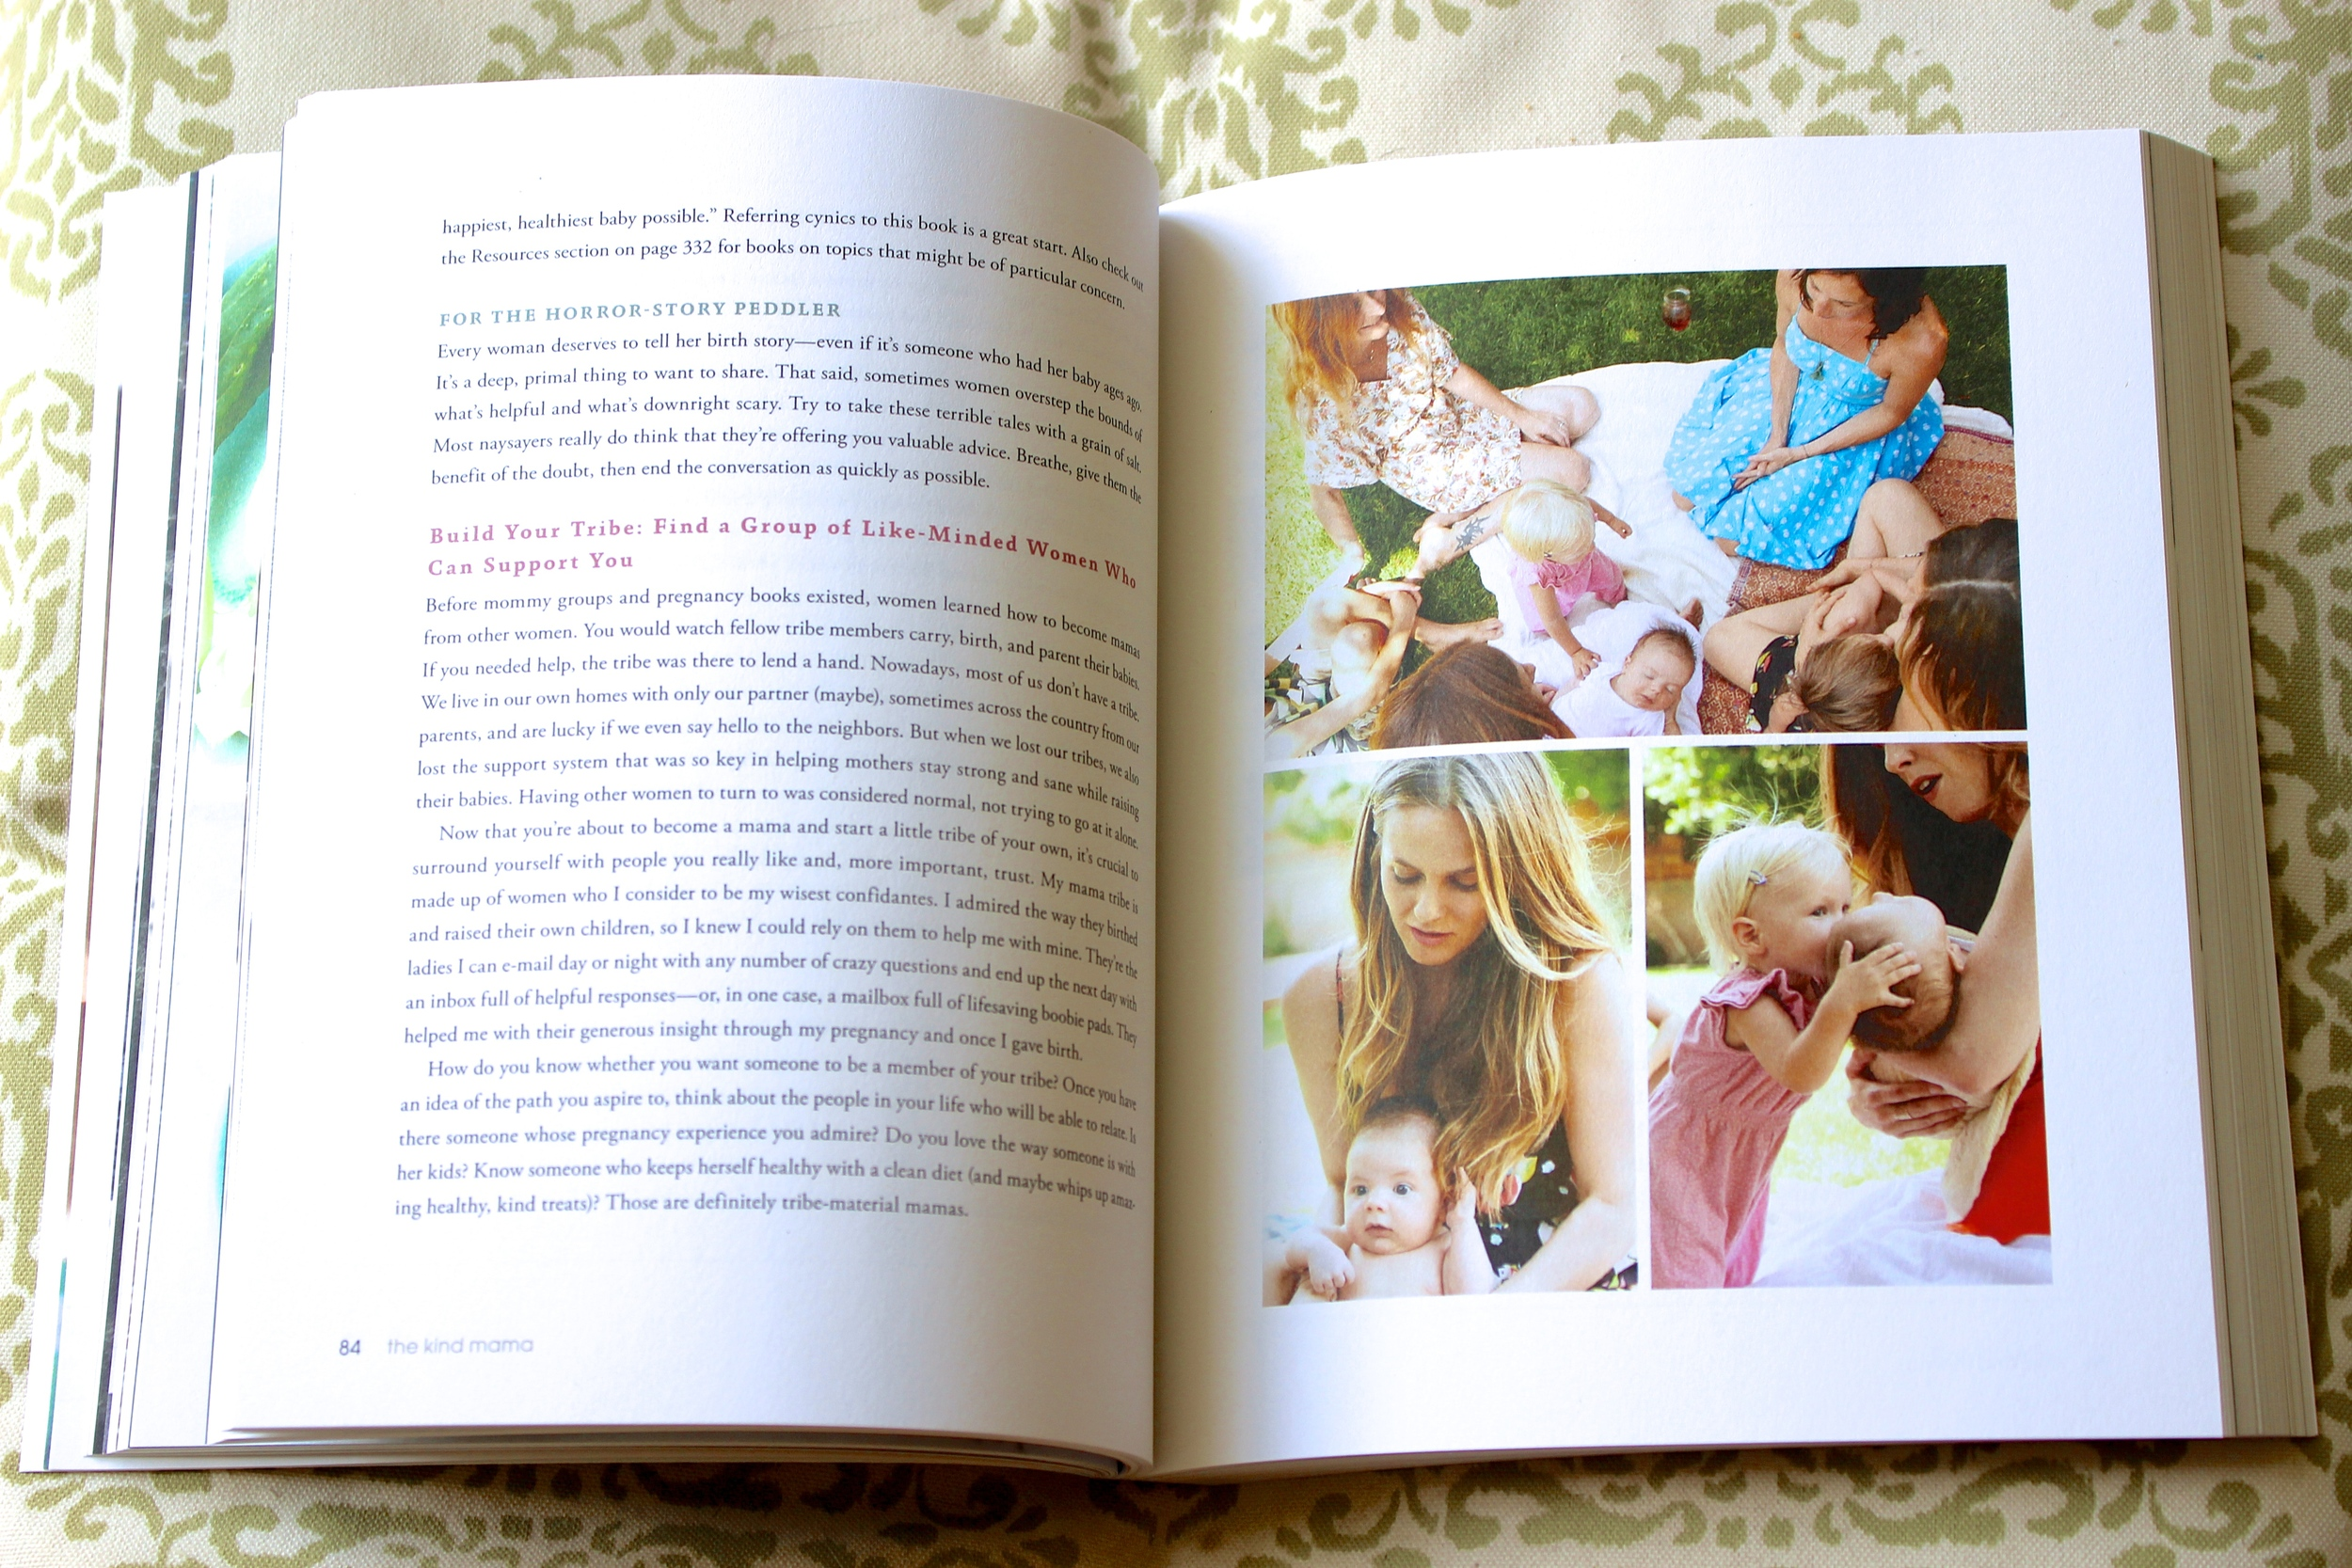 An excerpt from  The Kind Mama  on building your tribe